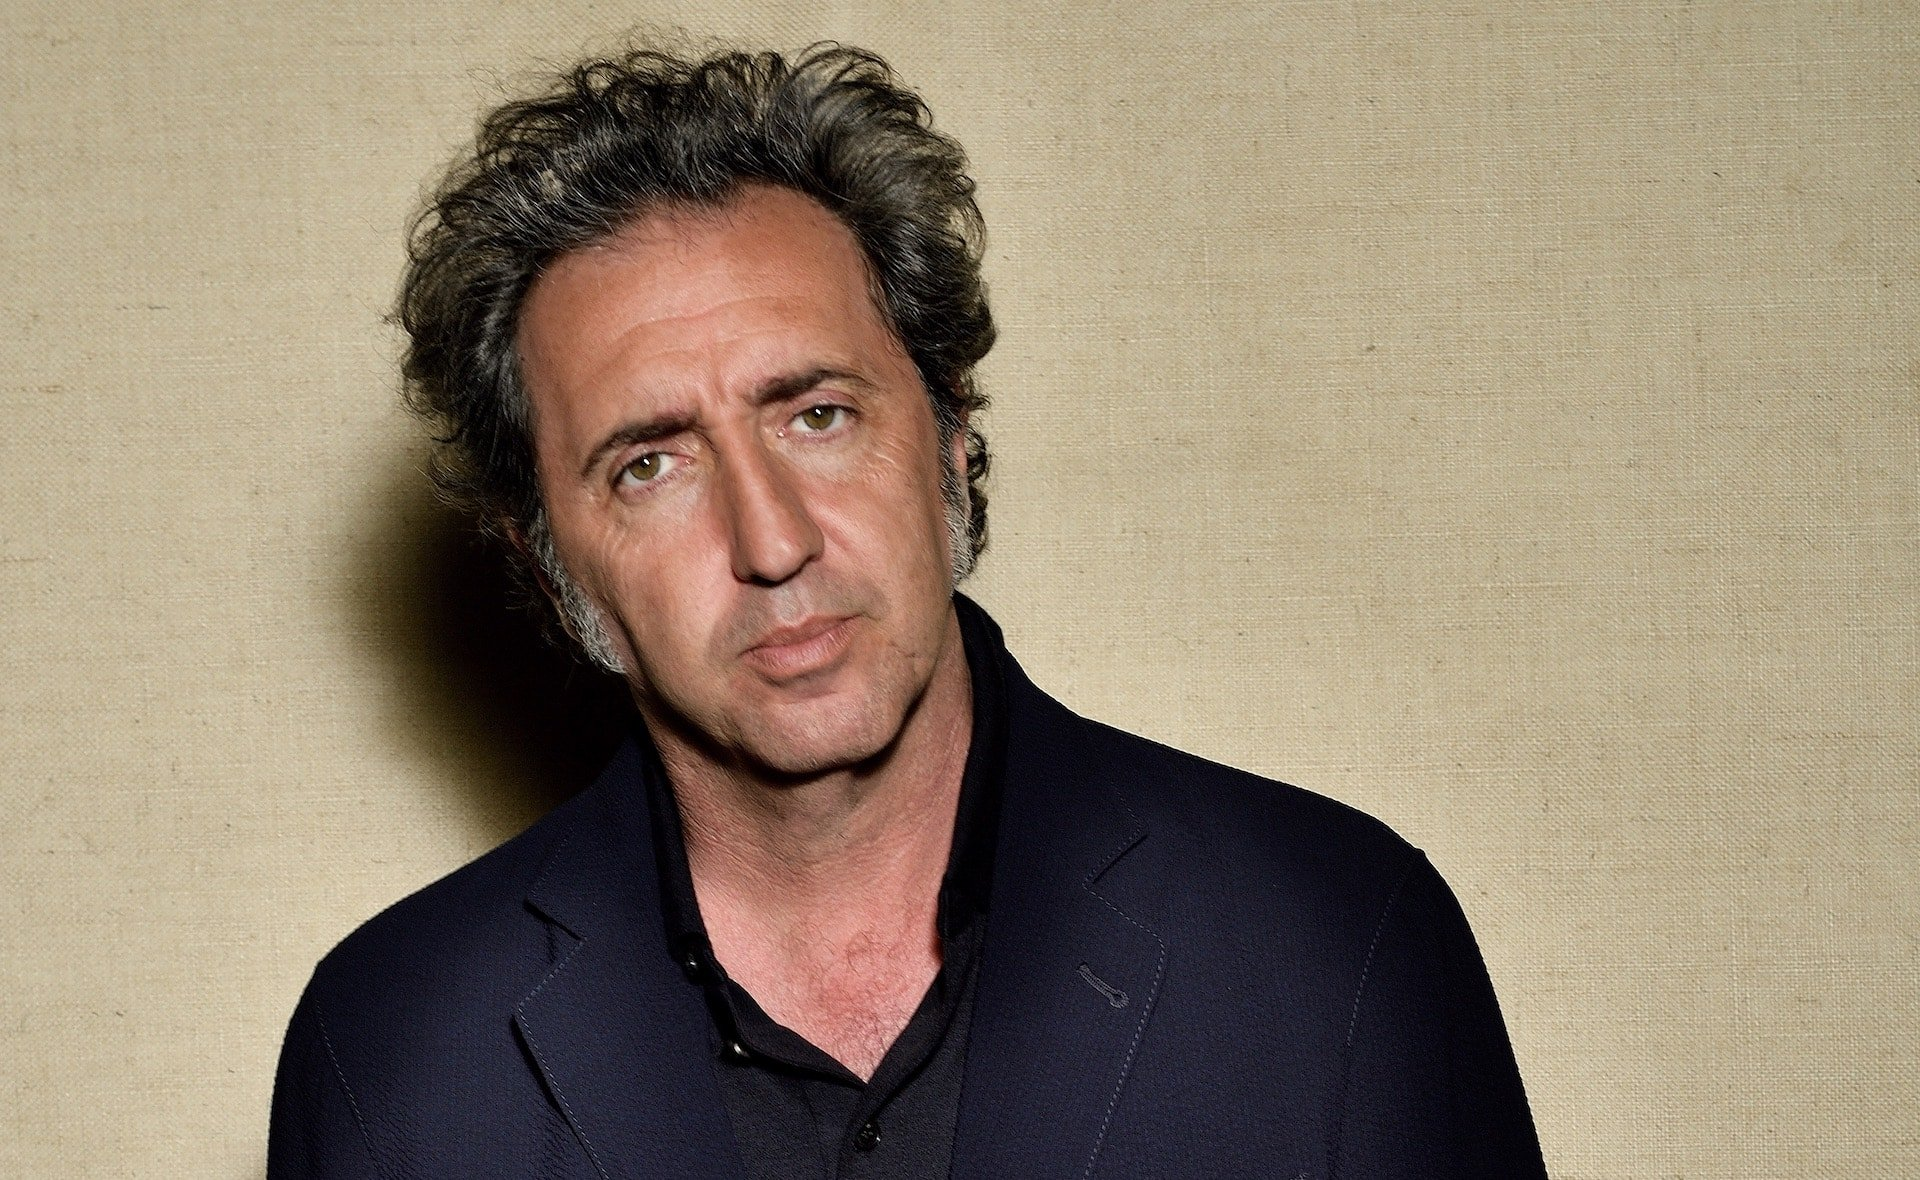 paolo sorrentino the hand of god cinematown.it